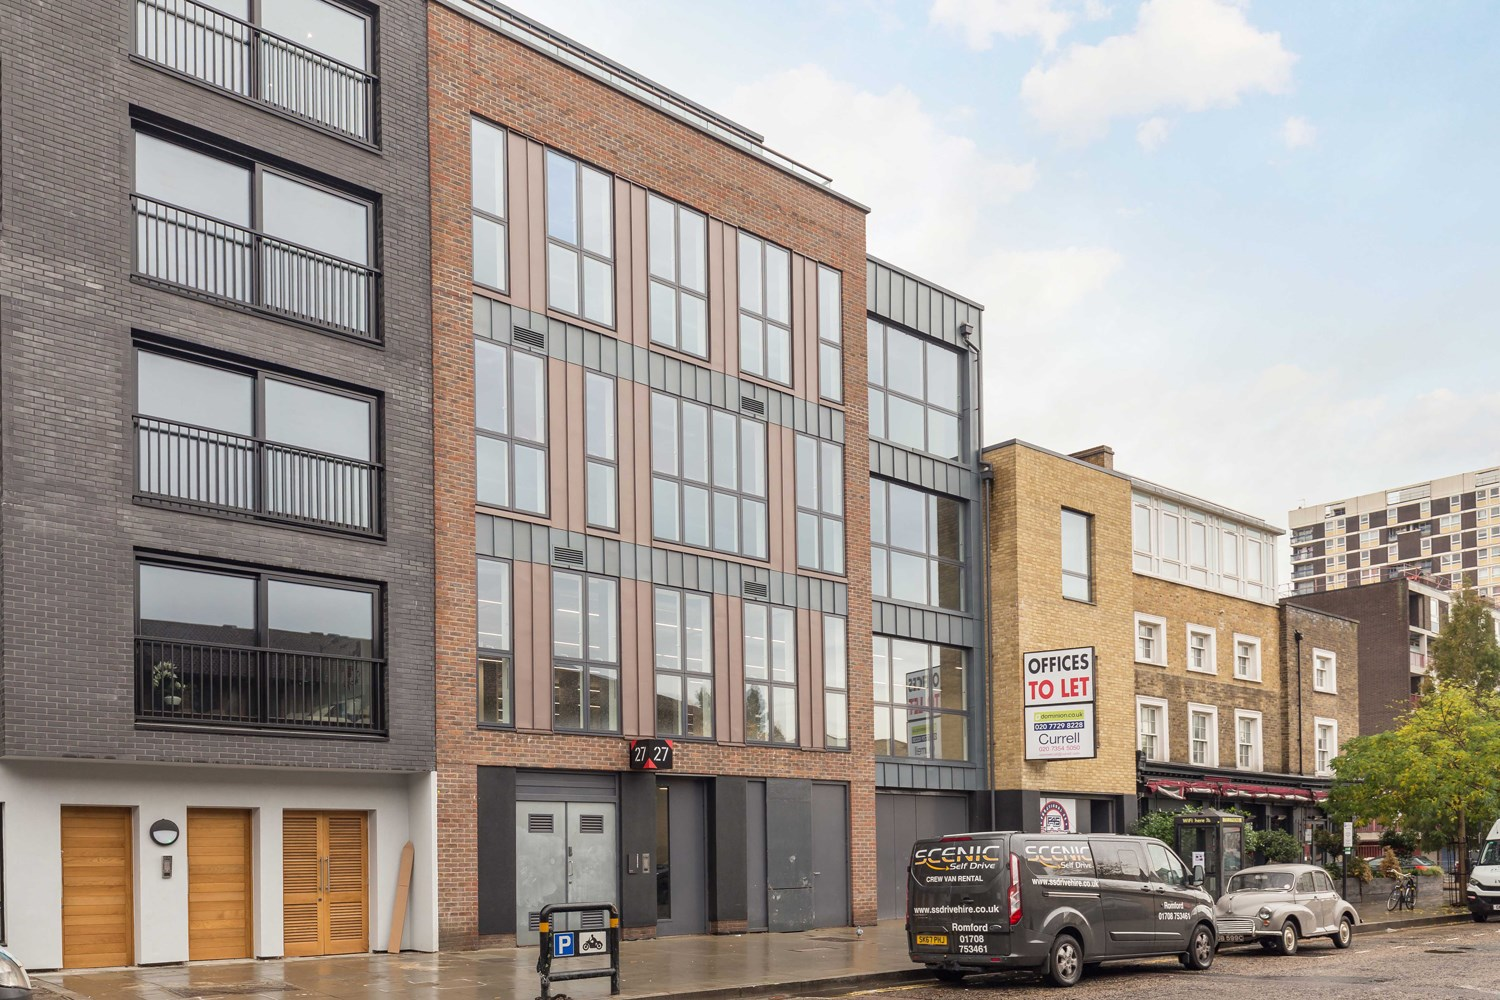 27 Downham Road N1 5AA Haggerston Office External Front7